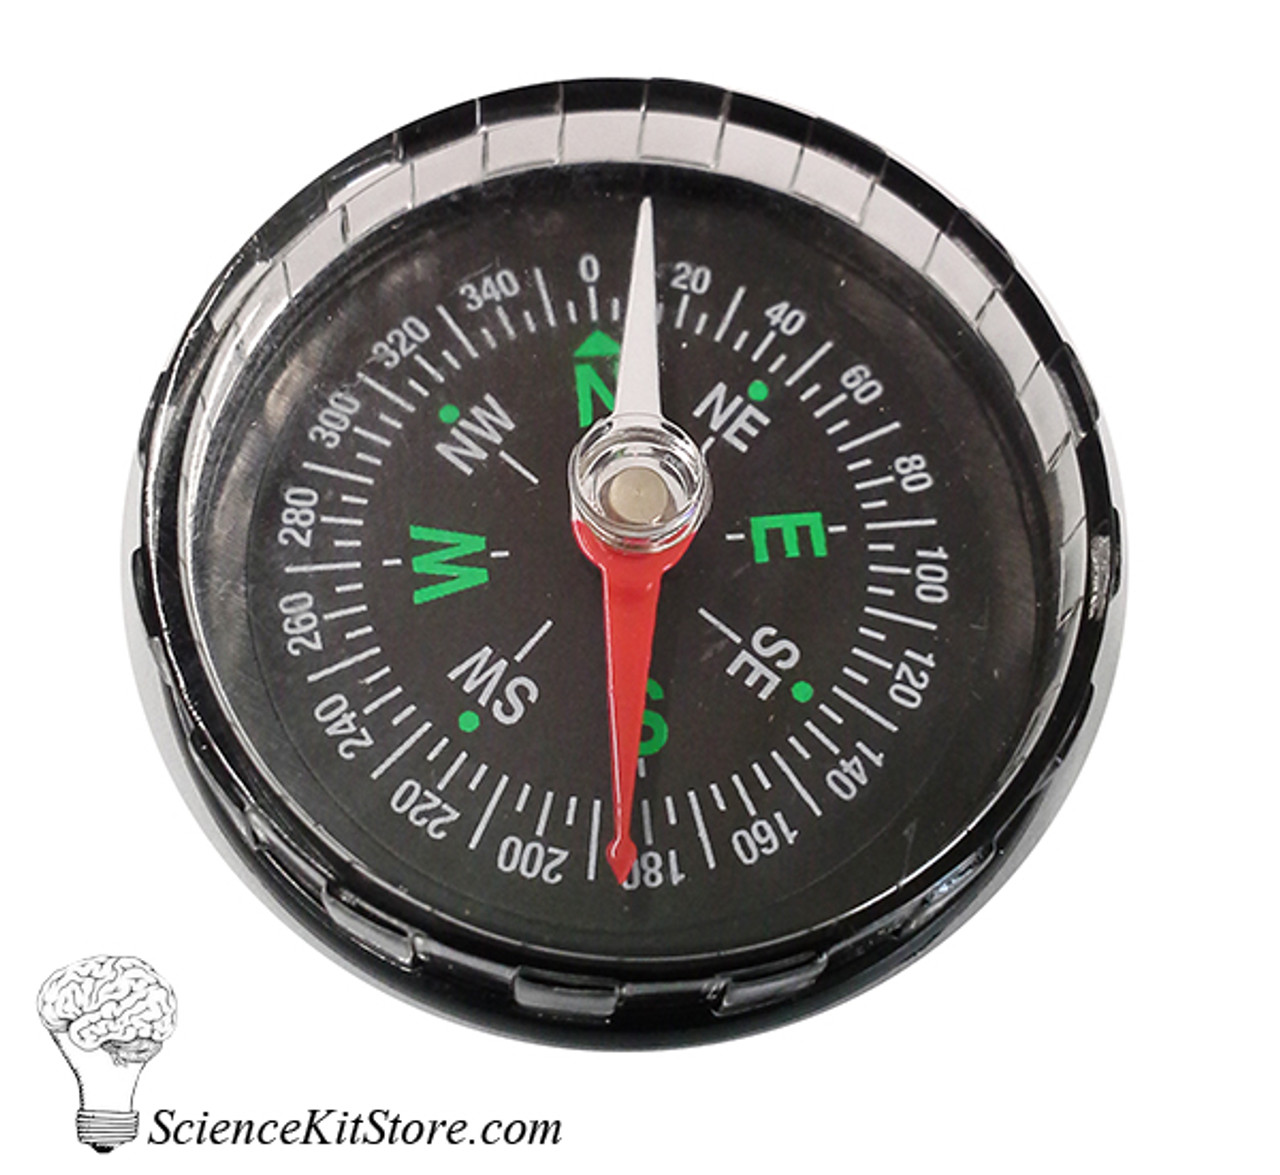 Plastic Compass without Liquid